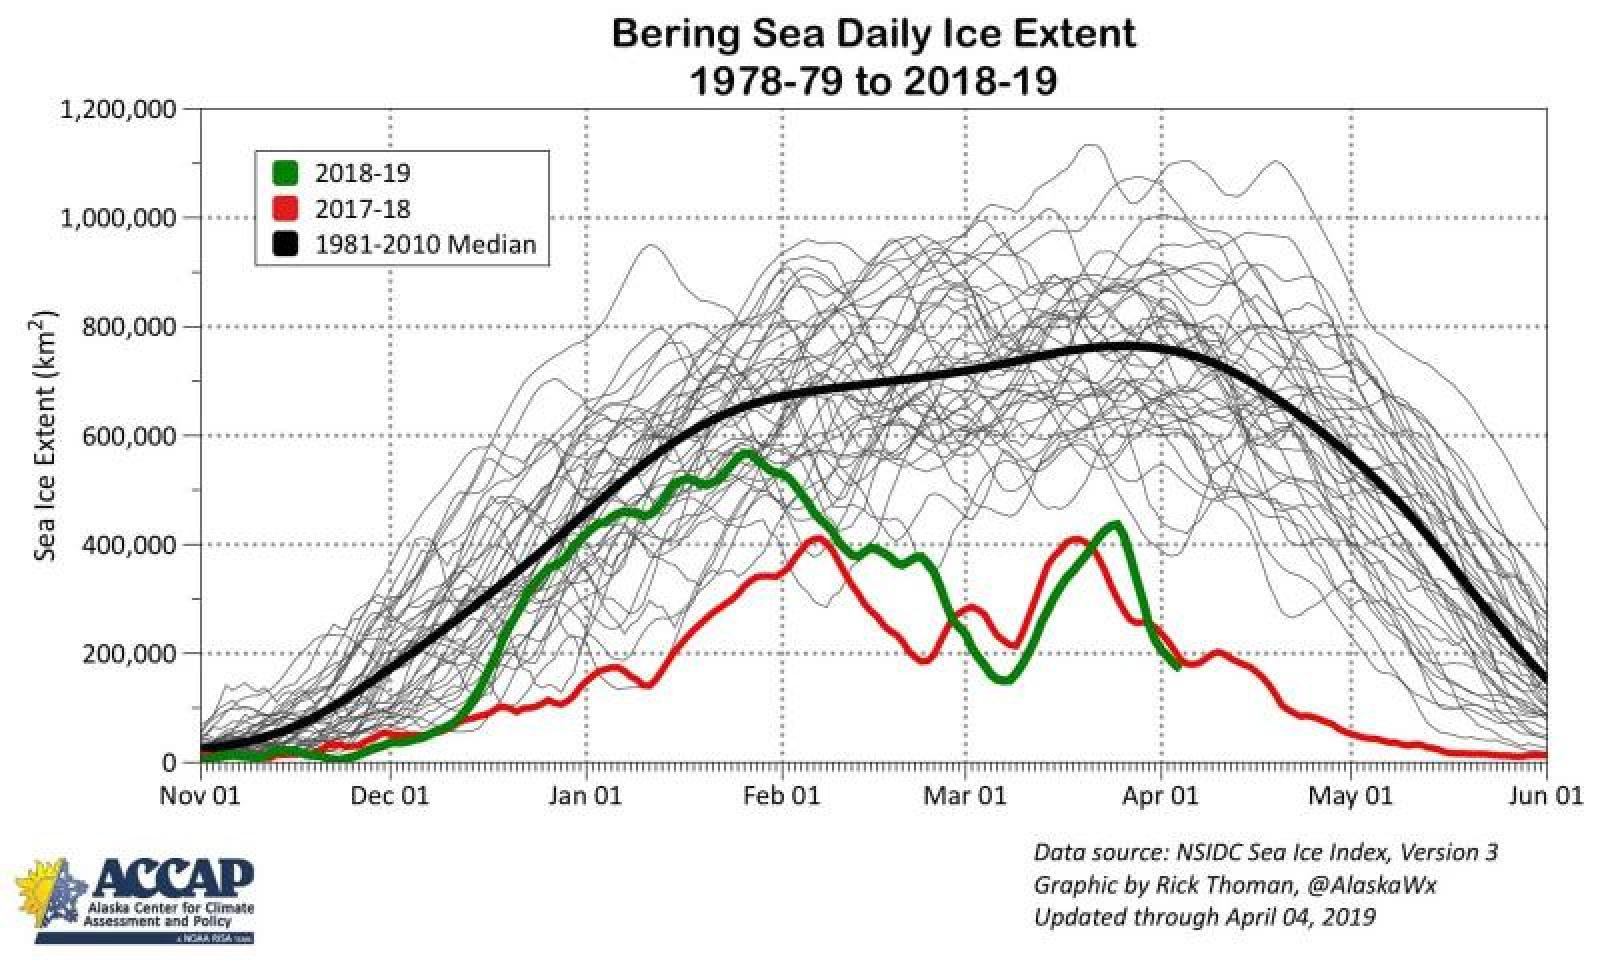 Bering Sea daily ice extent, 1978–2019. Source: NSIDC Sea Ice Index, v3. Graphic by Rick Thoman, ACCAP/@AlaskaWx. Updated through April 4, 2019.